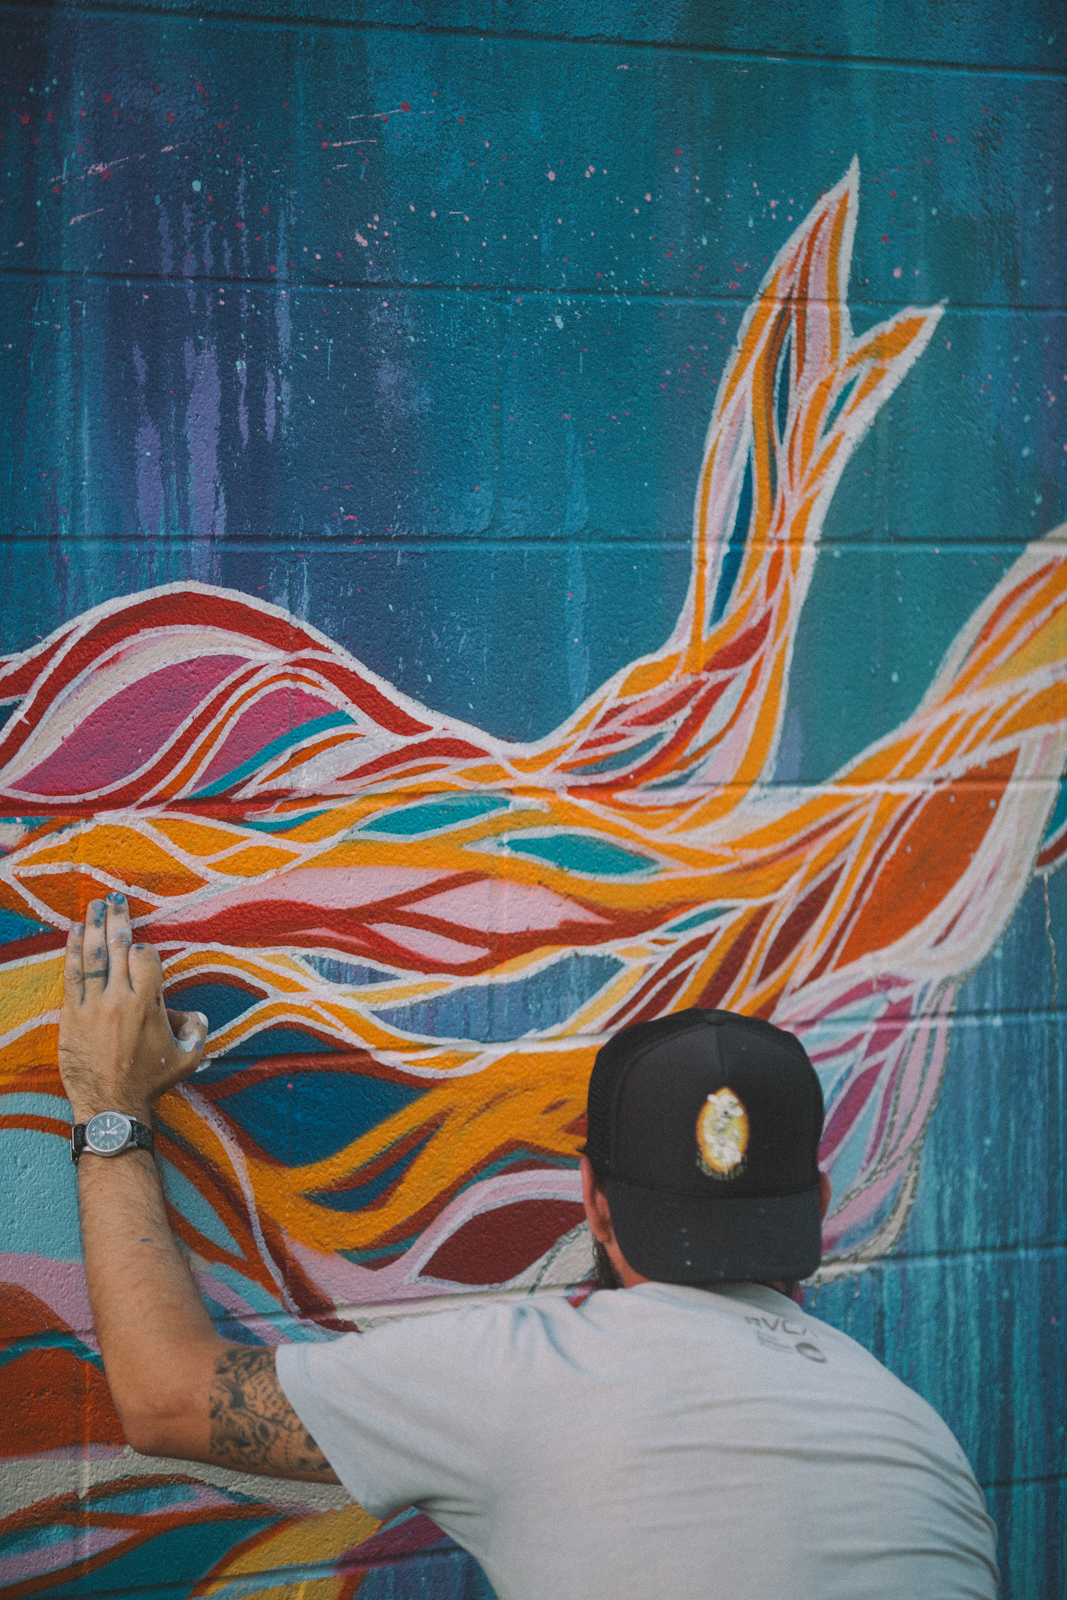 Chris Broy Painting The Witness at Pow Wow Hawaii